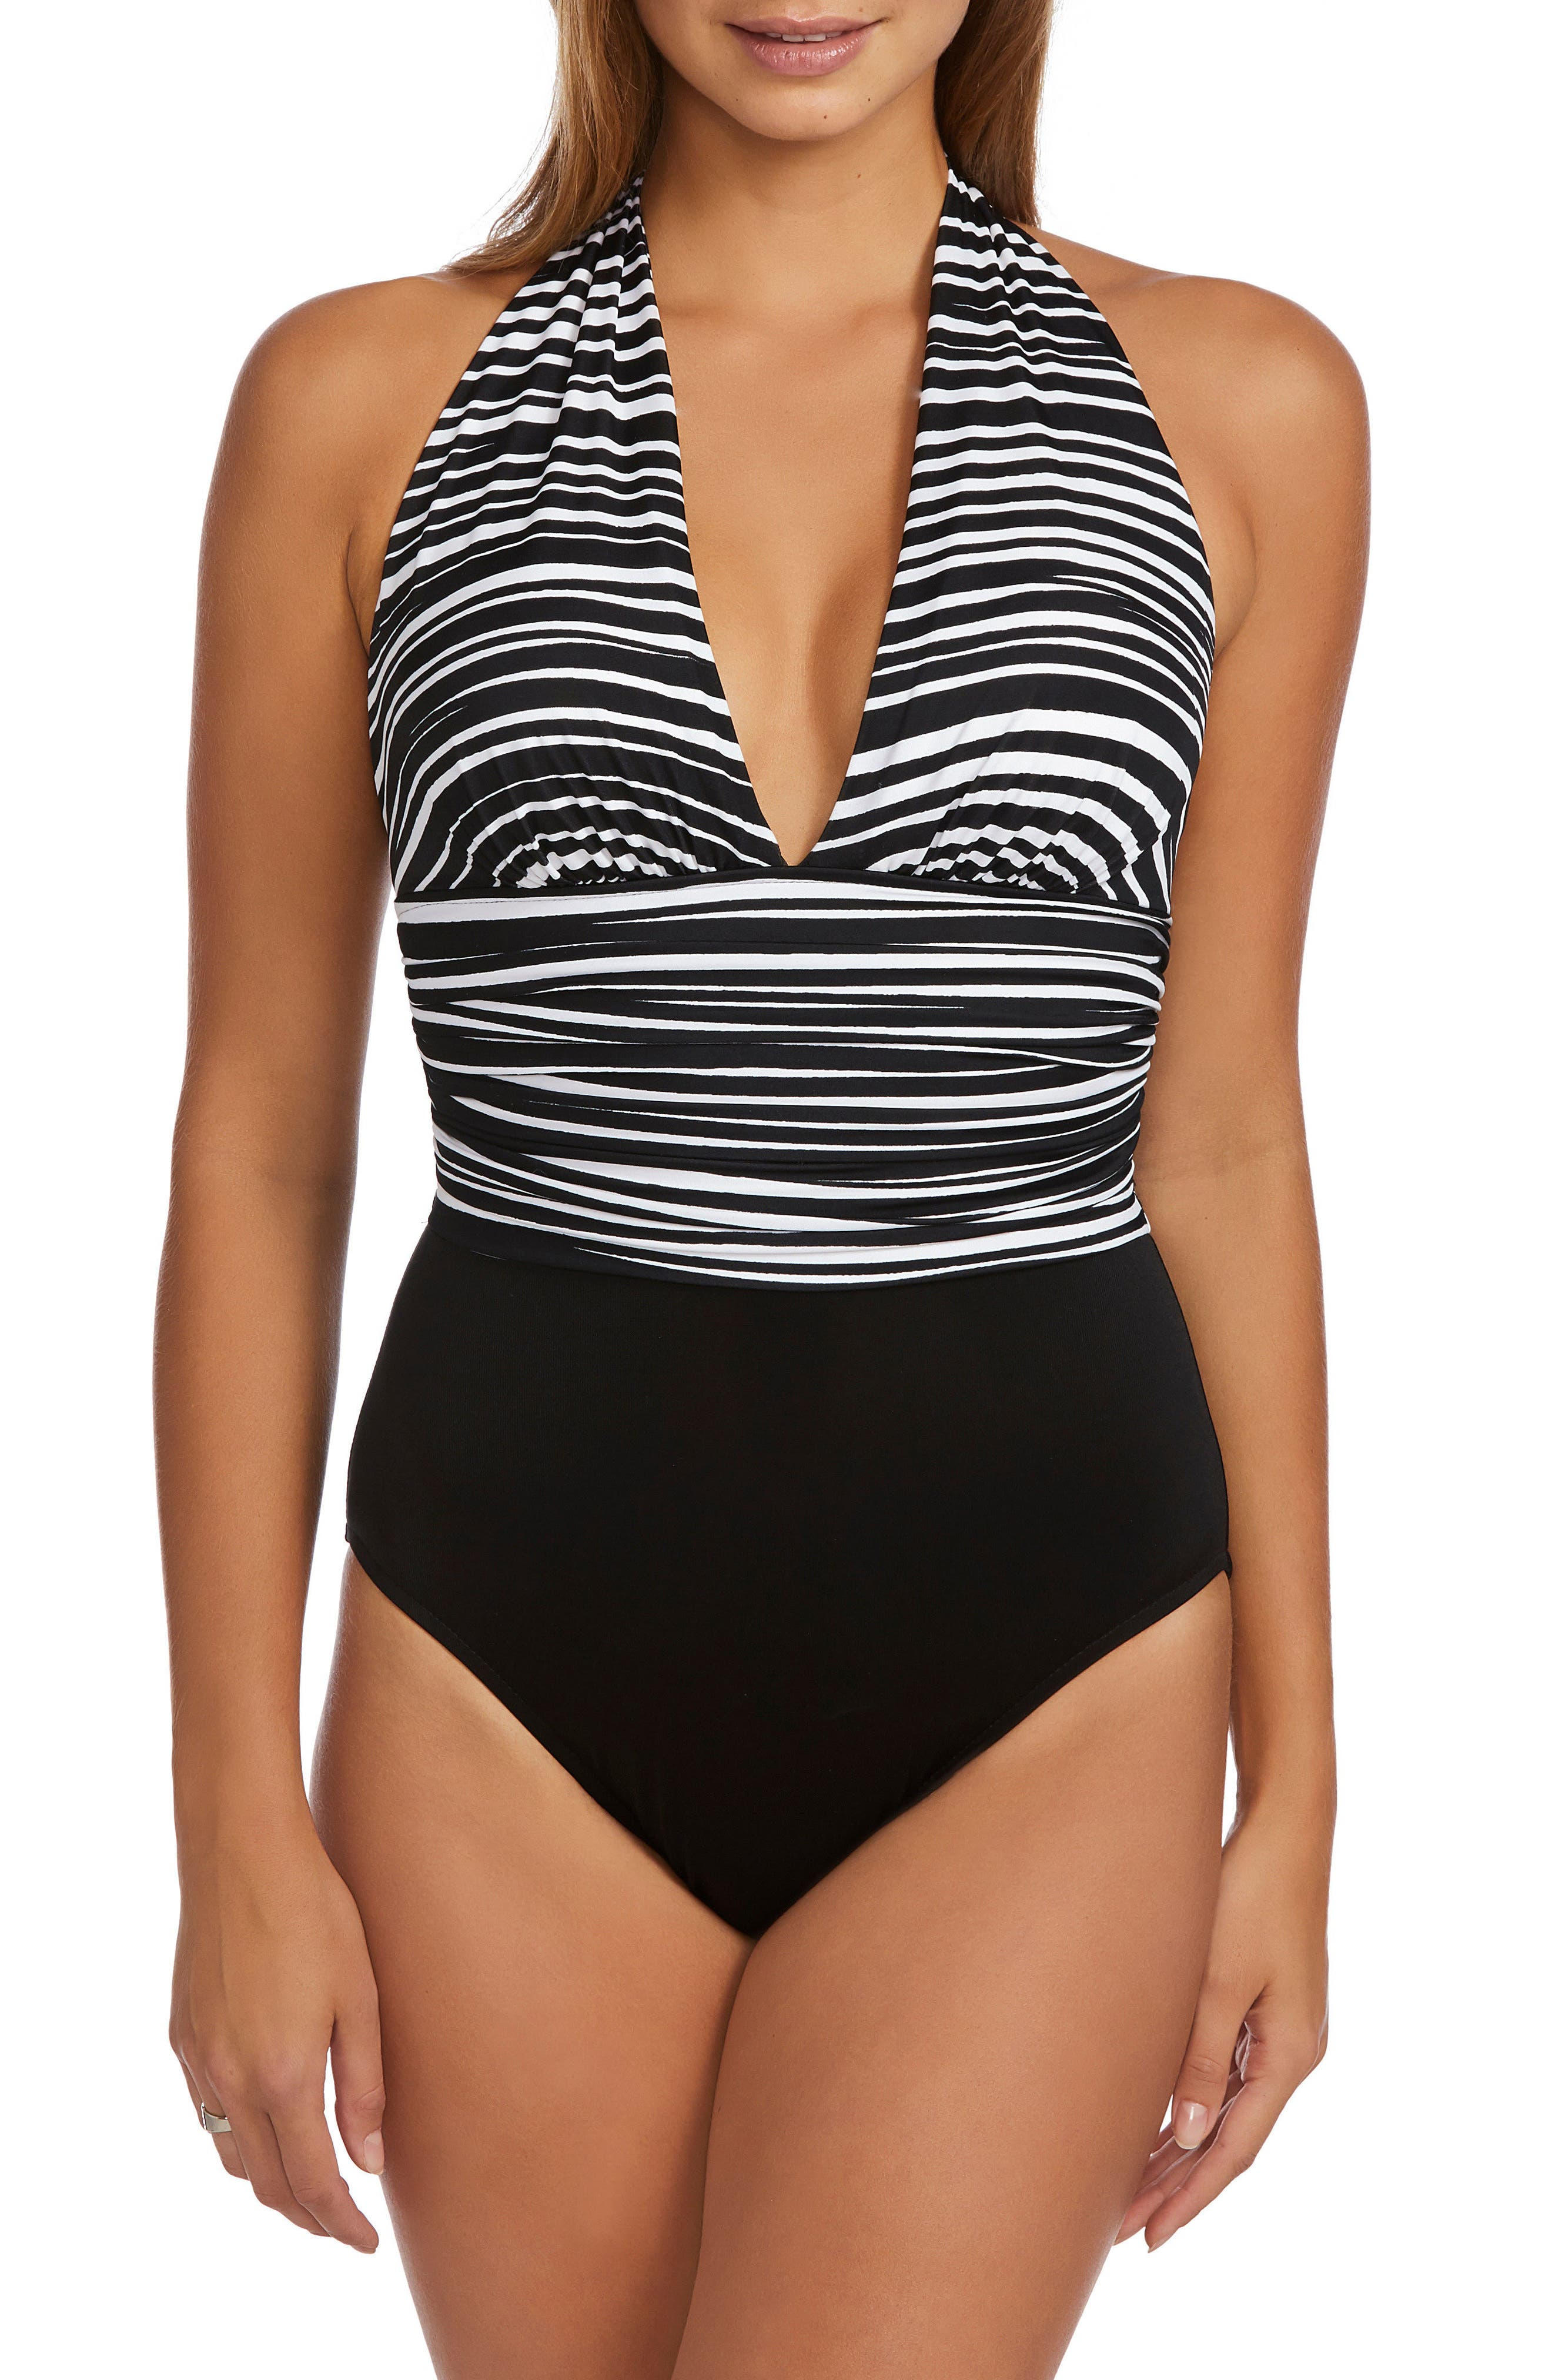 Yves Clean Lines One-Piece Swimsuit,                             Main thumbnail 1, color,                             Black/ White